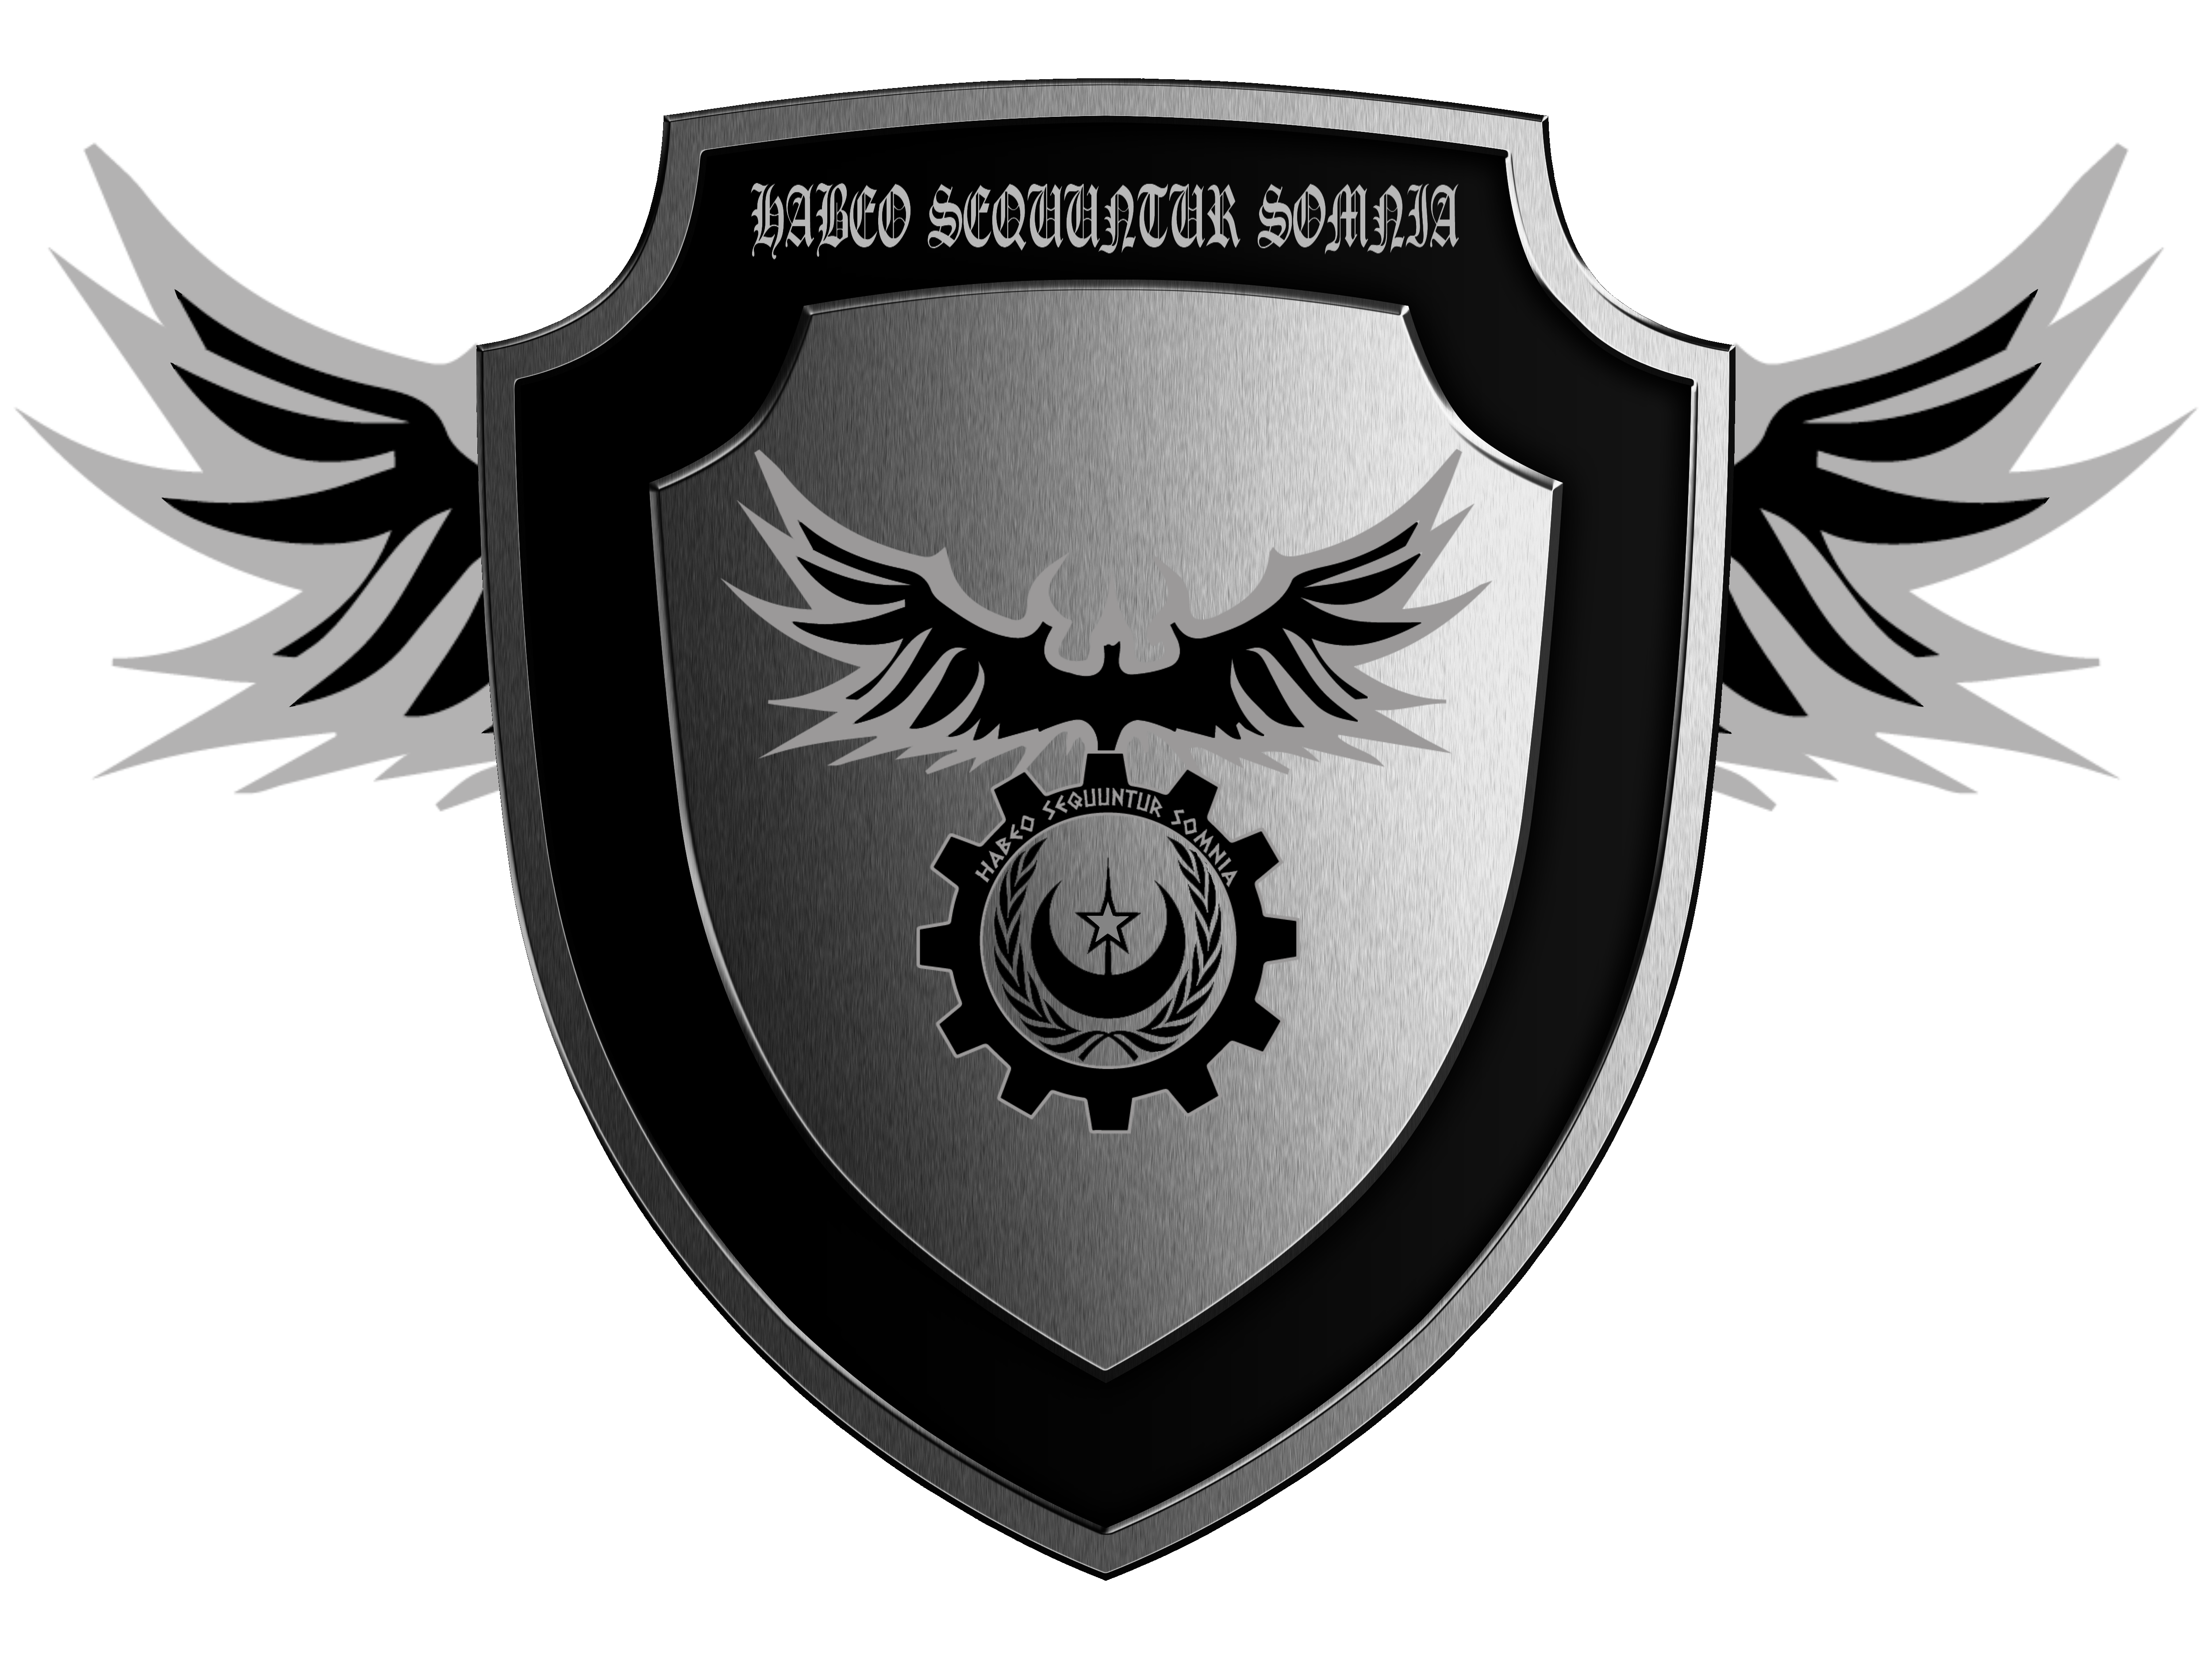 Shield with wings png. Of honor habeo sequuntur